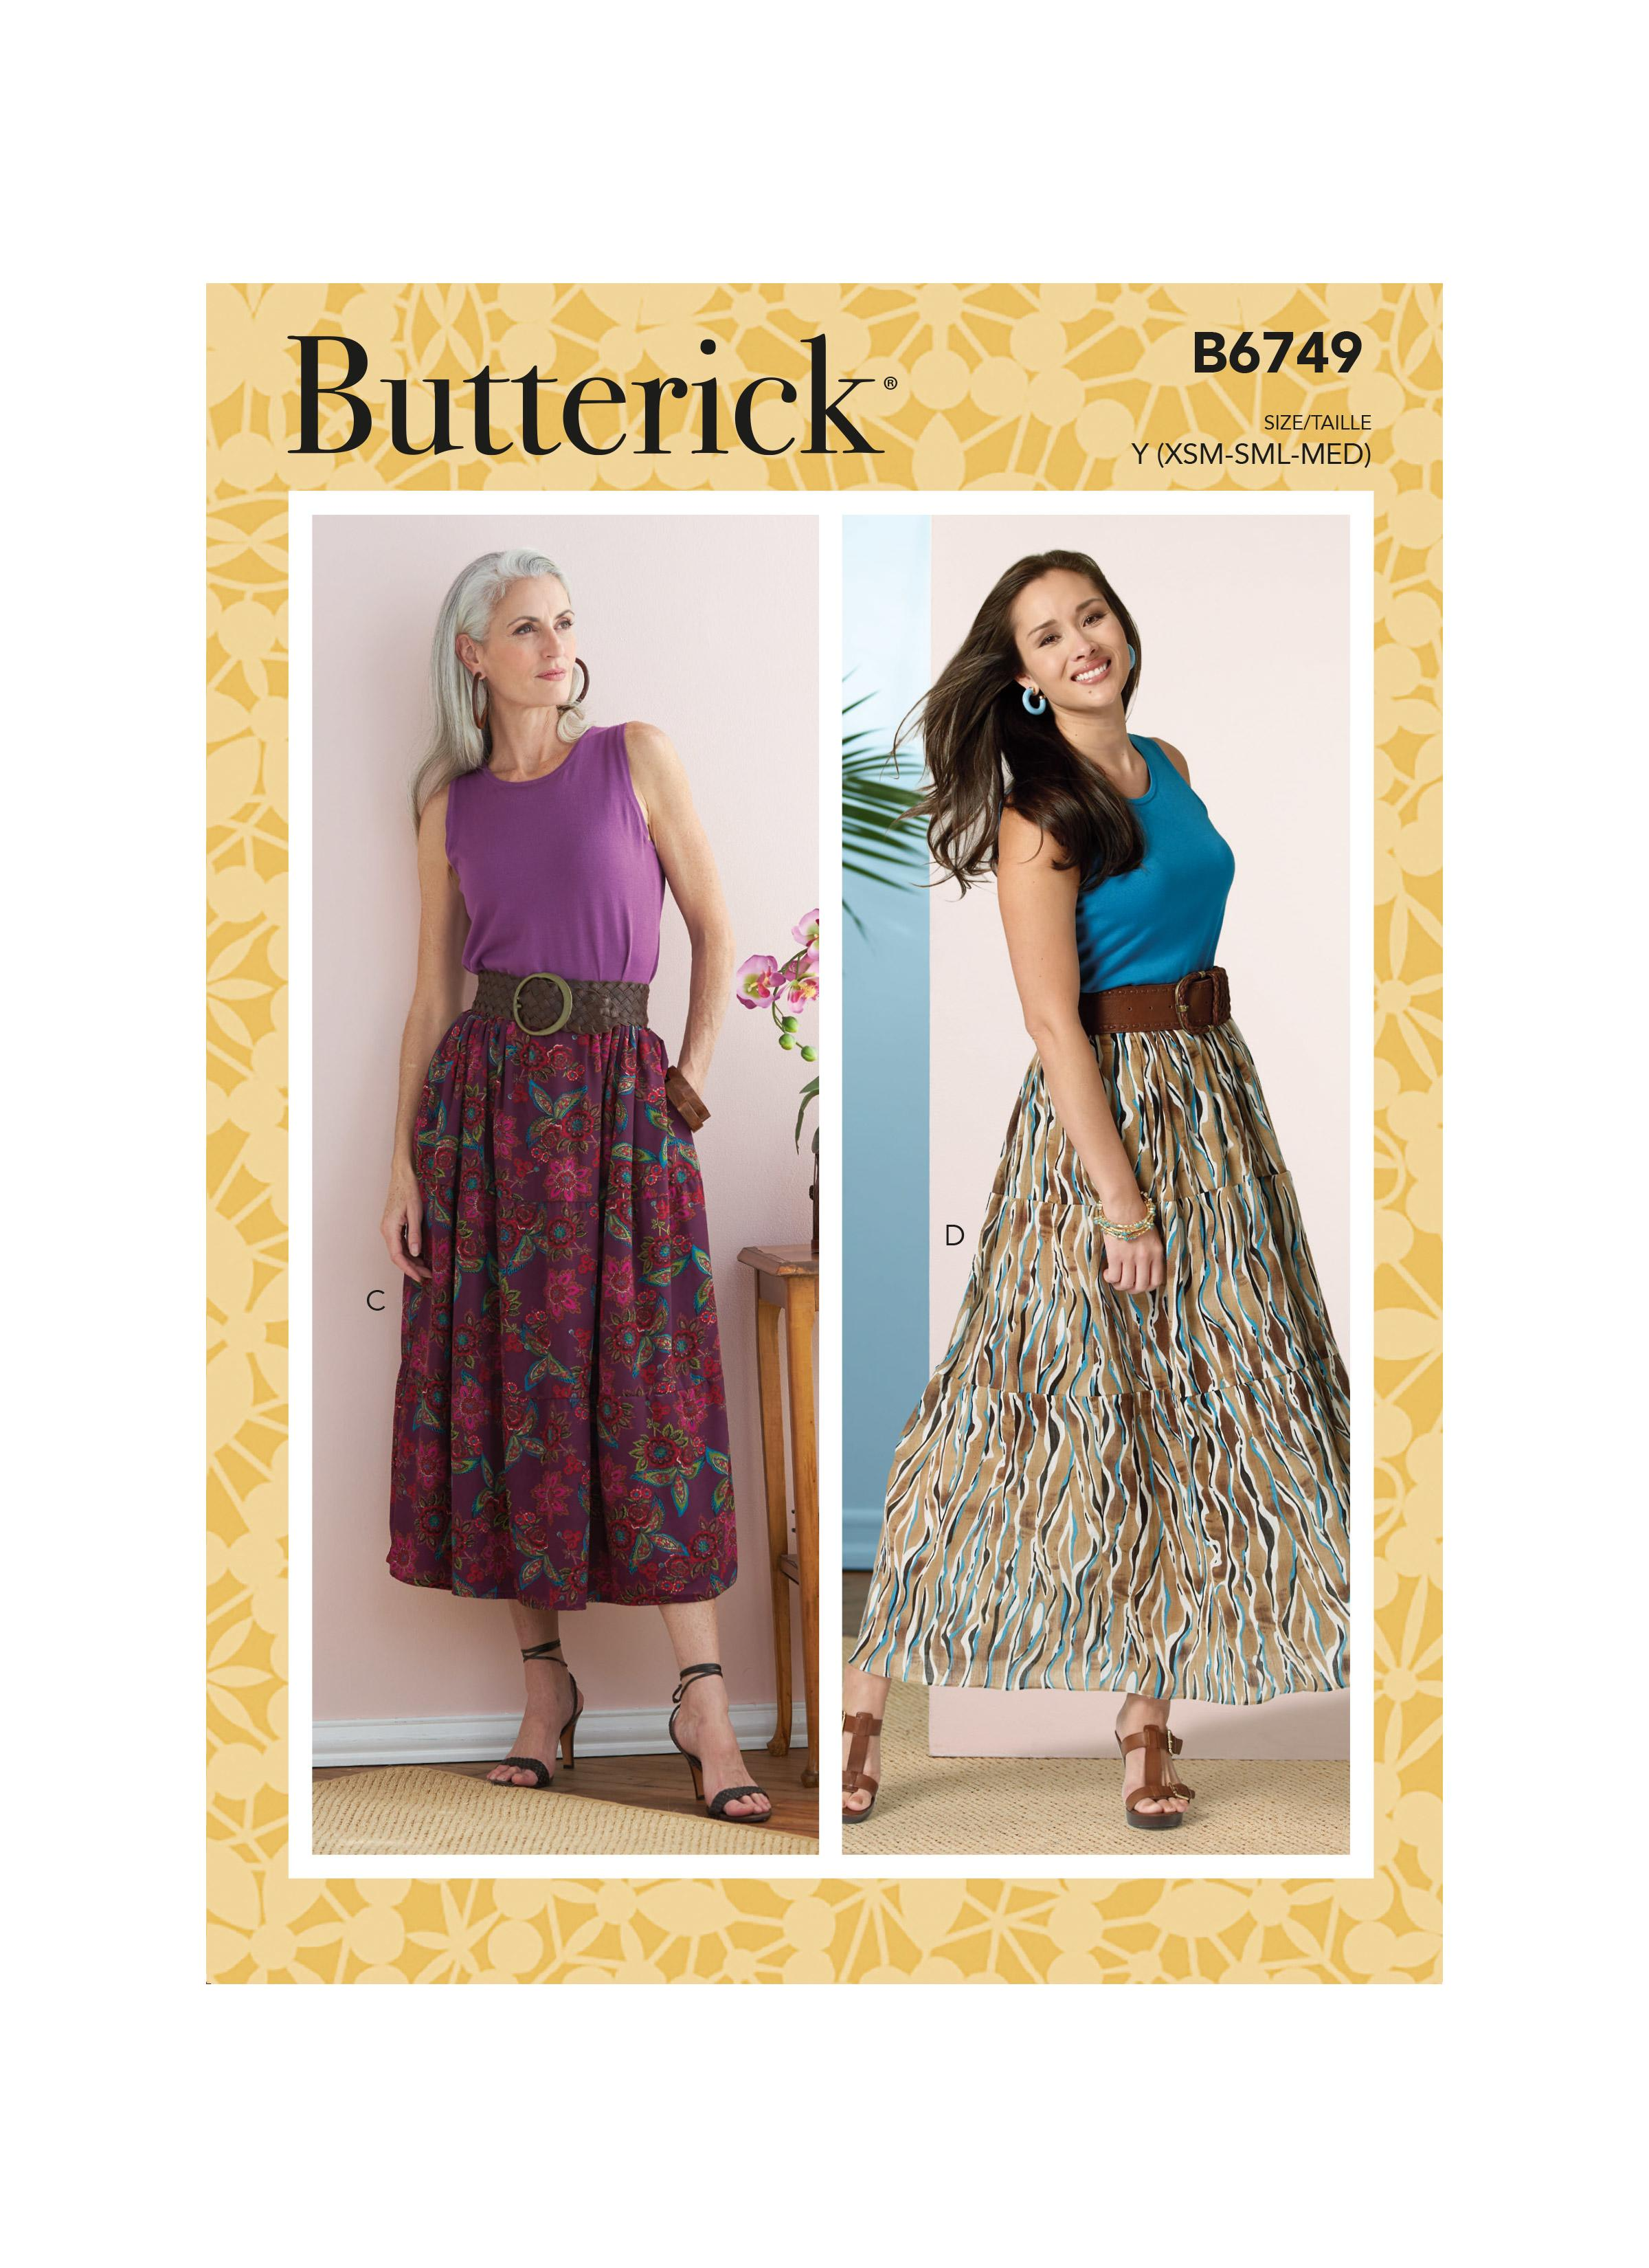 Butterick B6749 Misses' Gathered-Waist Skirts